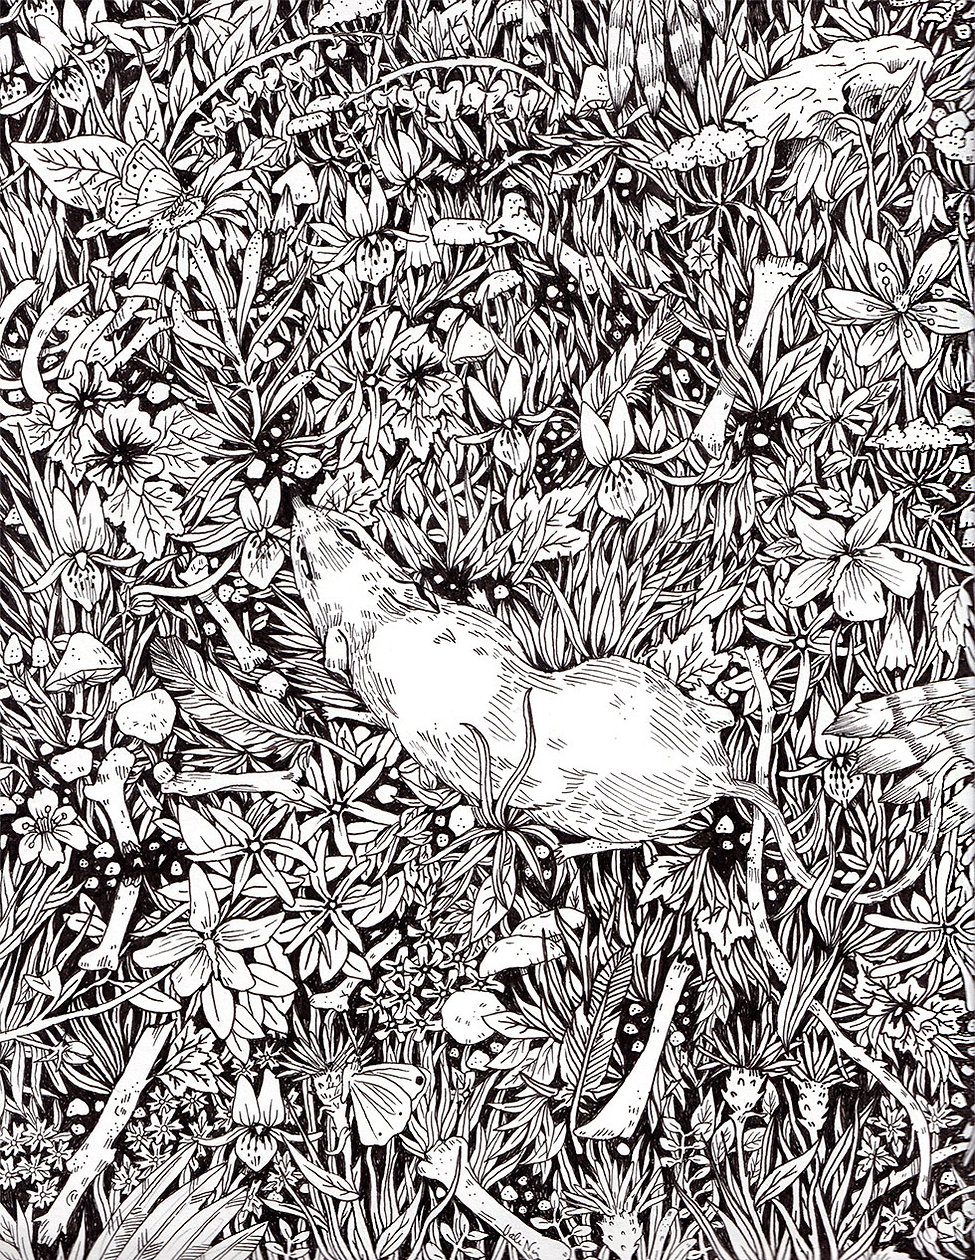 Black and white illustration of rat scurrying through plants and broken bones